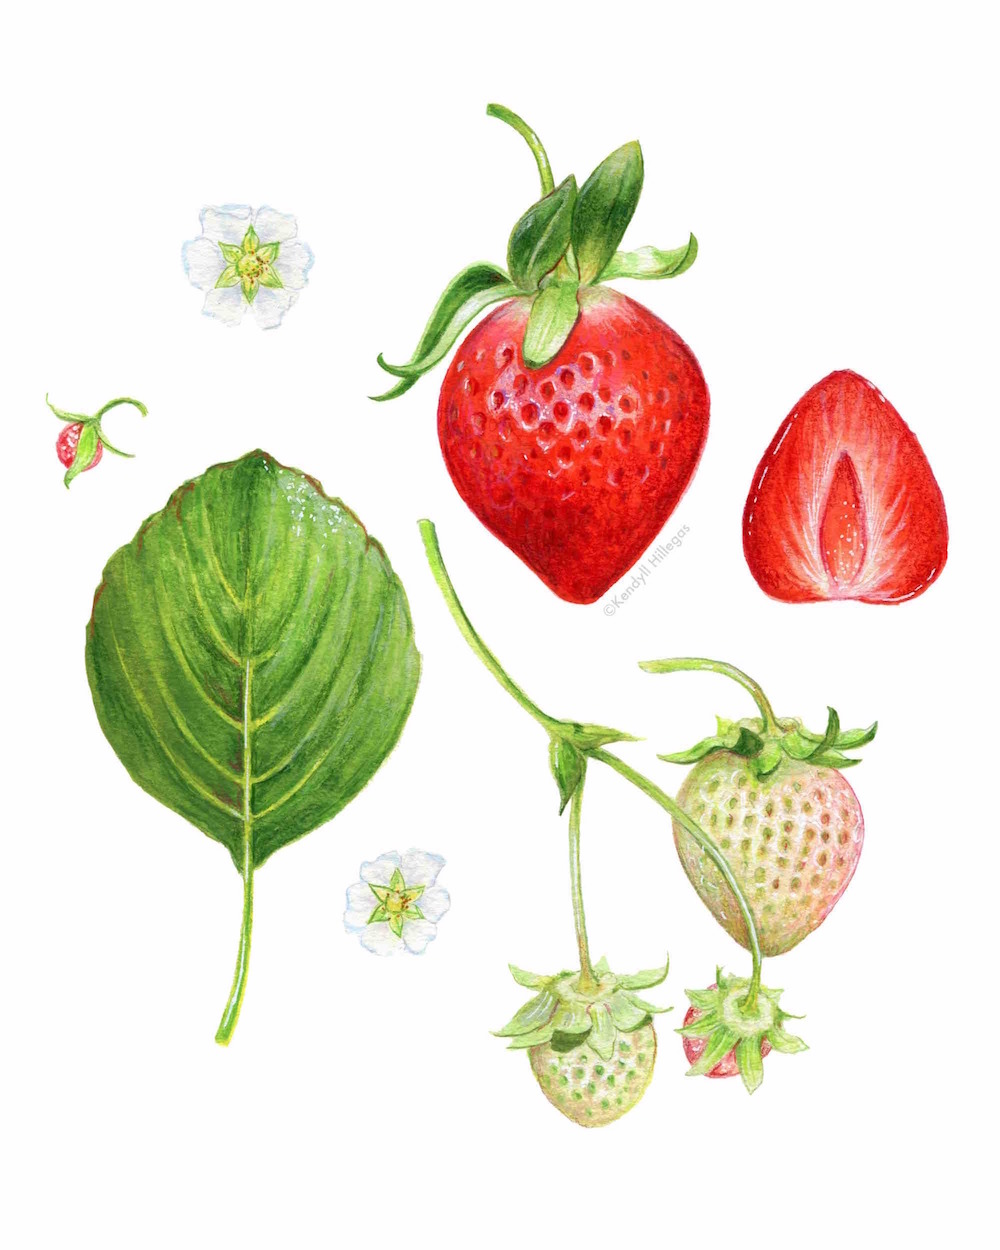 Strawberry Scientific Illustration